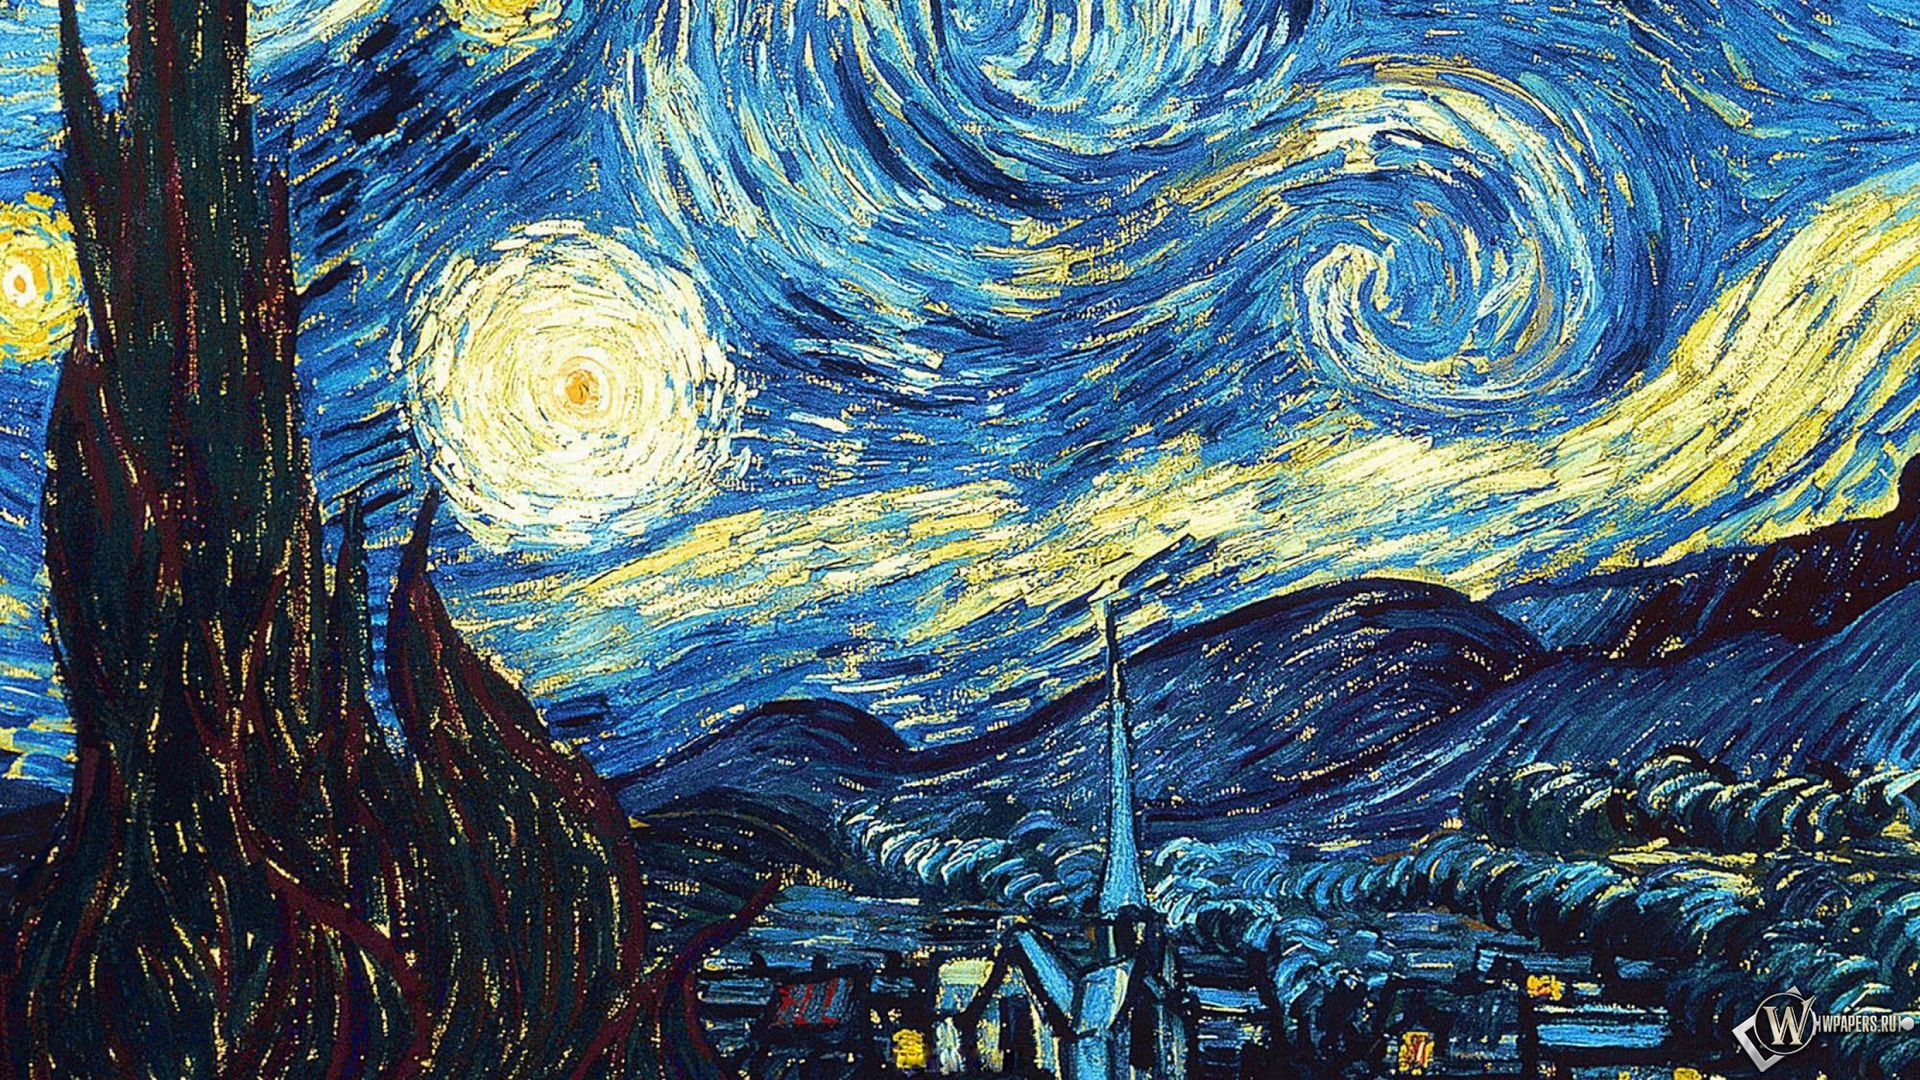 Download Wallpaper 1920x1080 Vincent Van Gogh The Starry Night